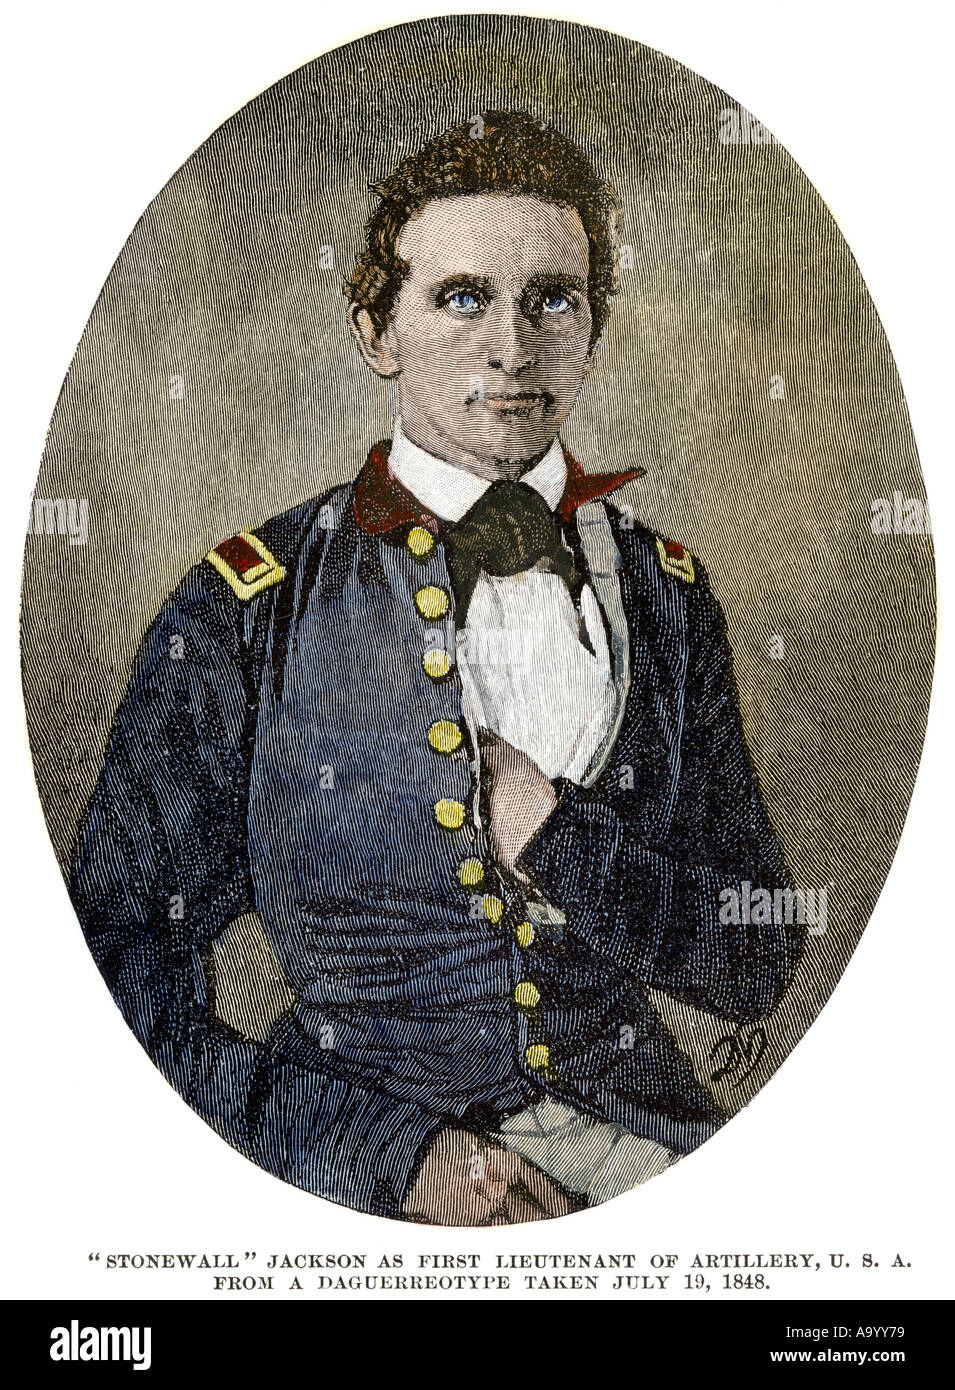 Young Thomas Jackson when he was first lieutenant of artillery US Army 1848 later known as Stonewall Jackson. Hand-colored woodcut - Stock Image